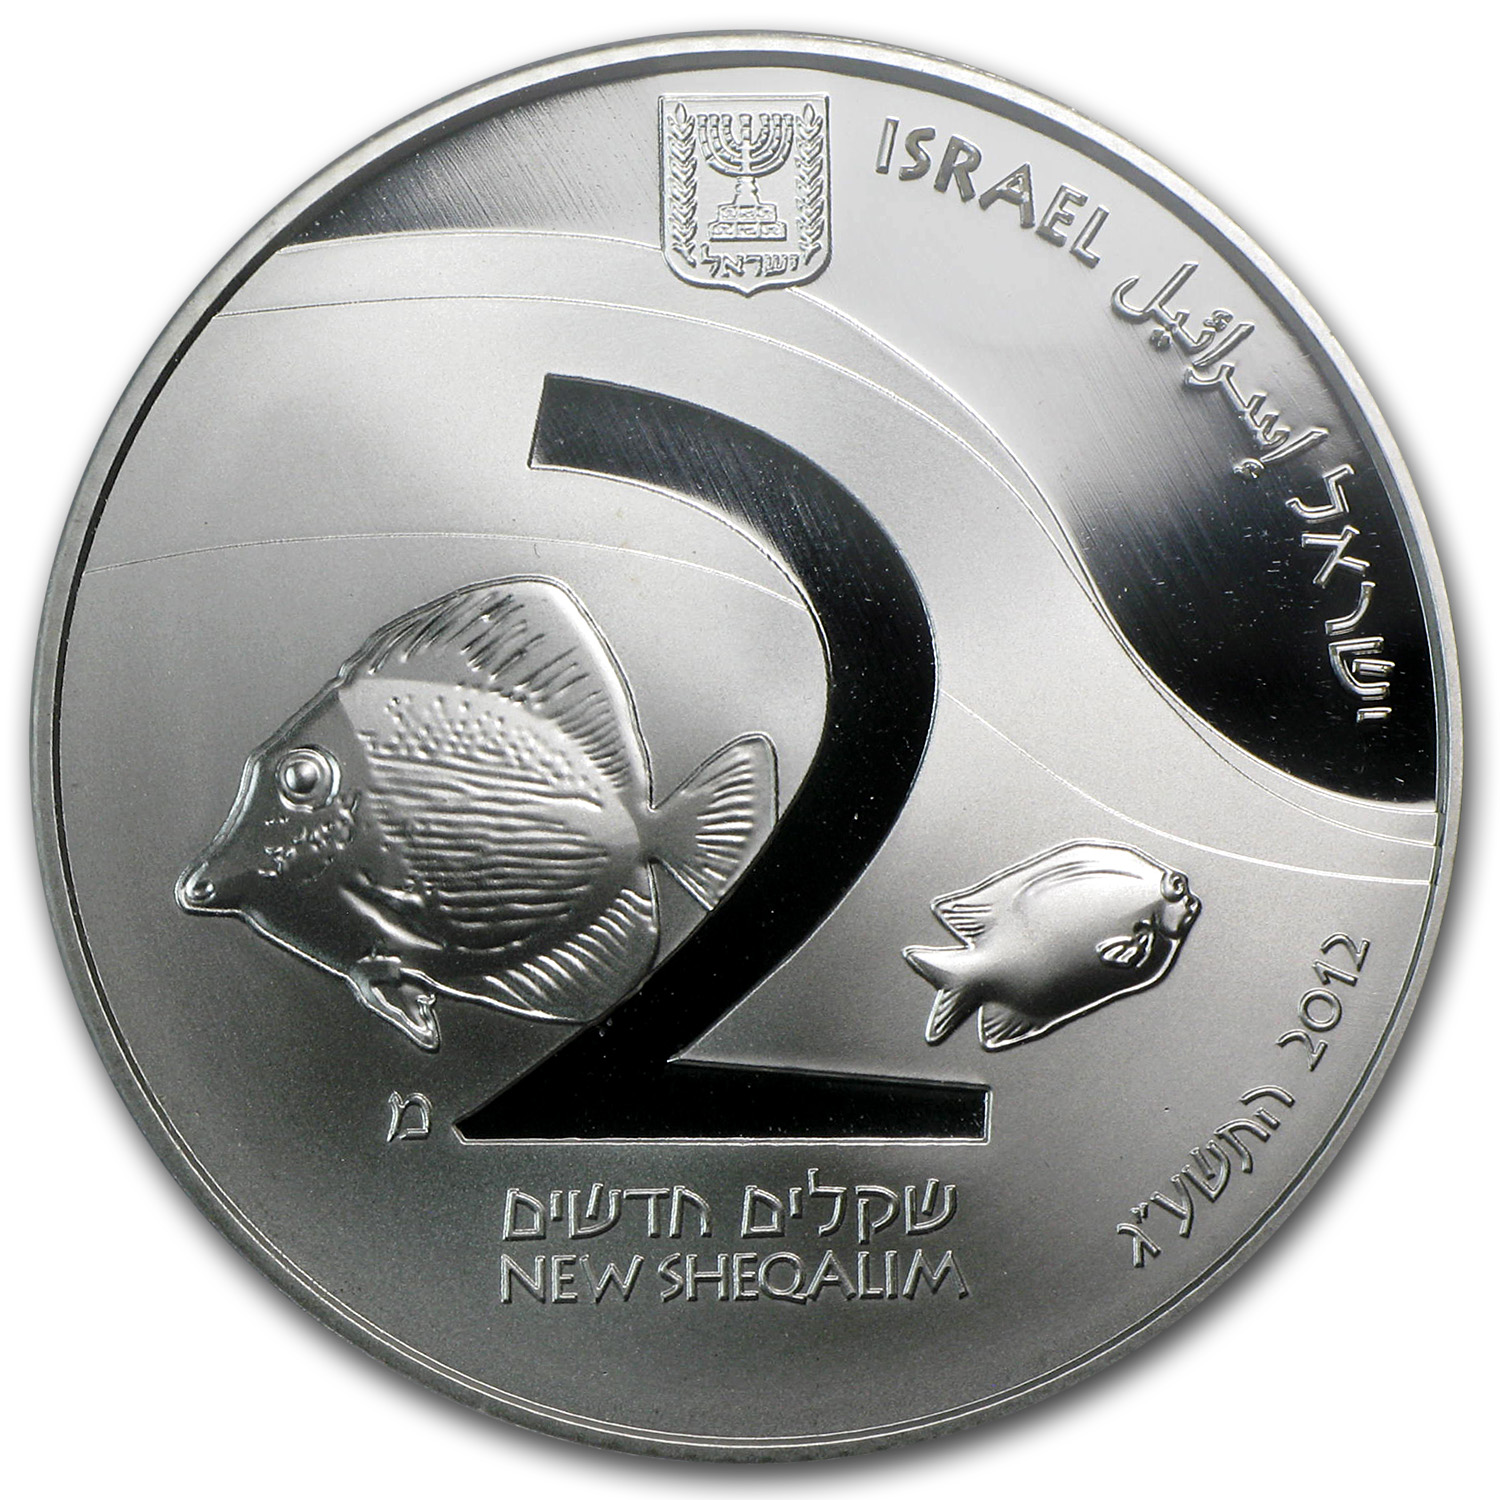 2012 Israel Coral Reef, Eilat Silver 2 NIS Coin PR-69 DCAM PCGS